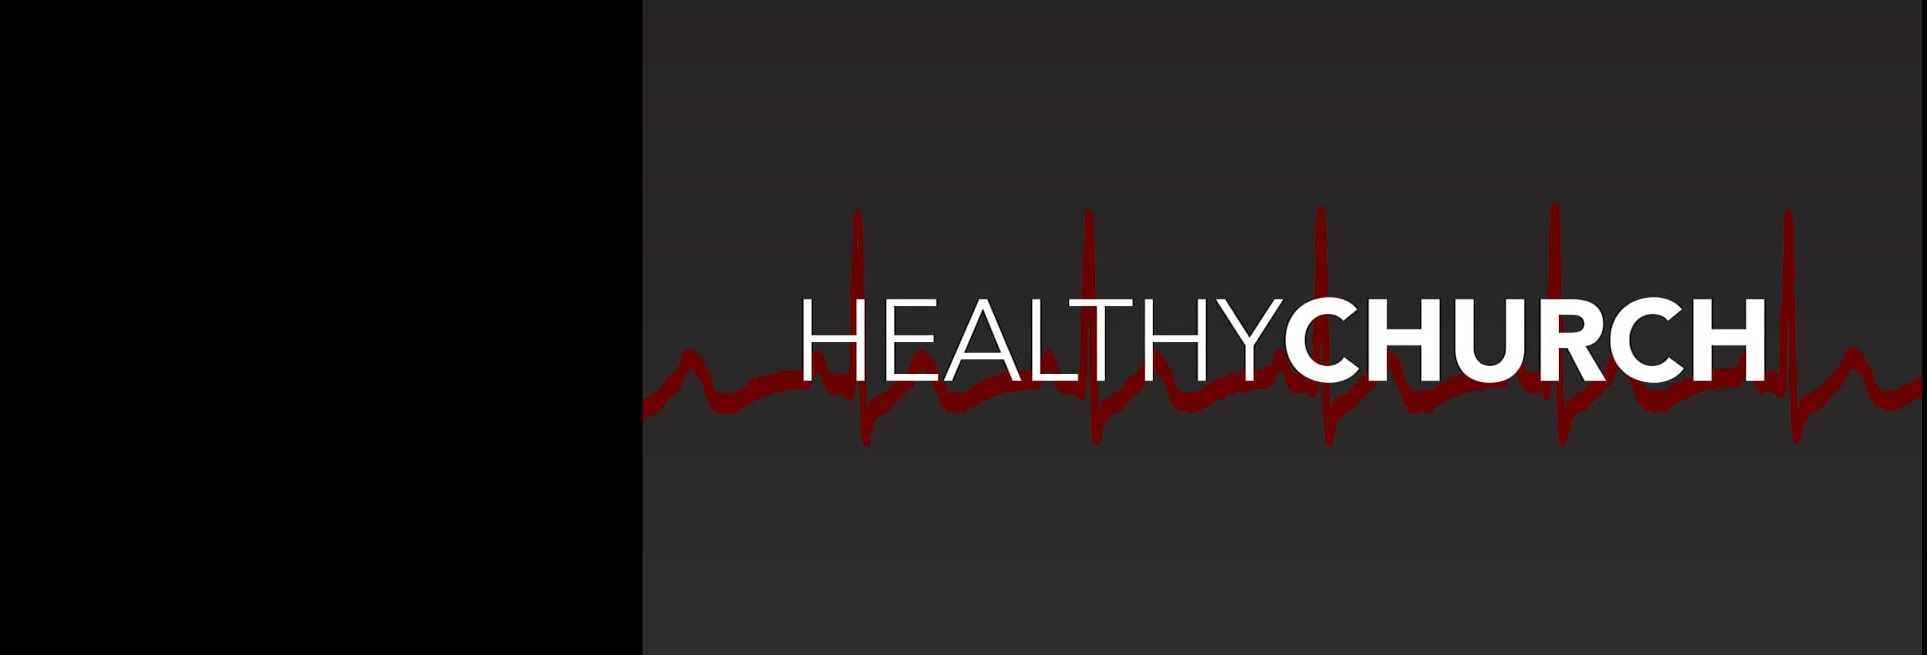 SUMMER SERIES 2016: HEALTHY CHURCHJuly 3rd - August 28th 2016